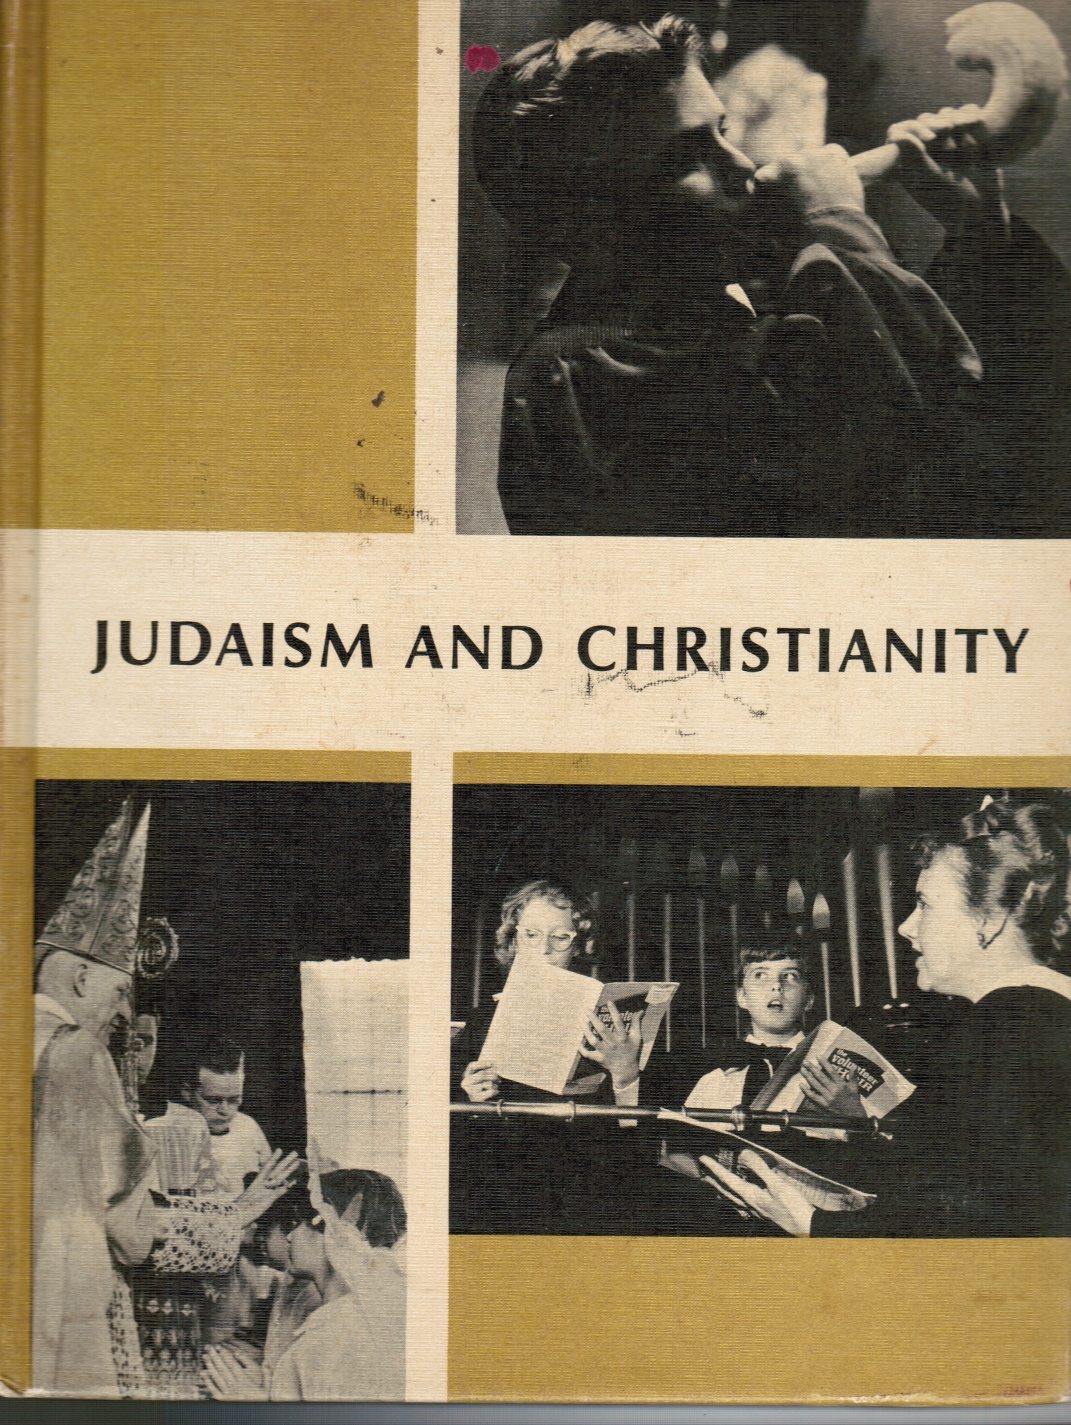 Judaism and Christianity: What We Believe